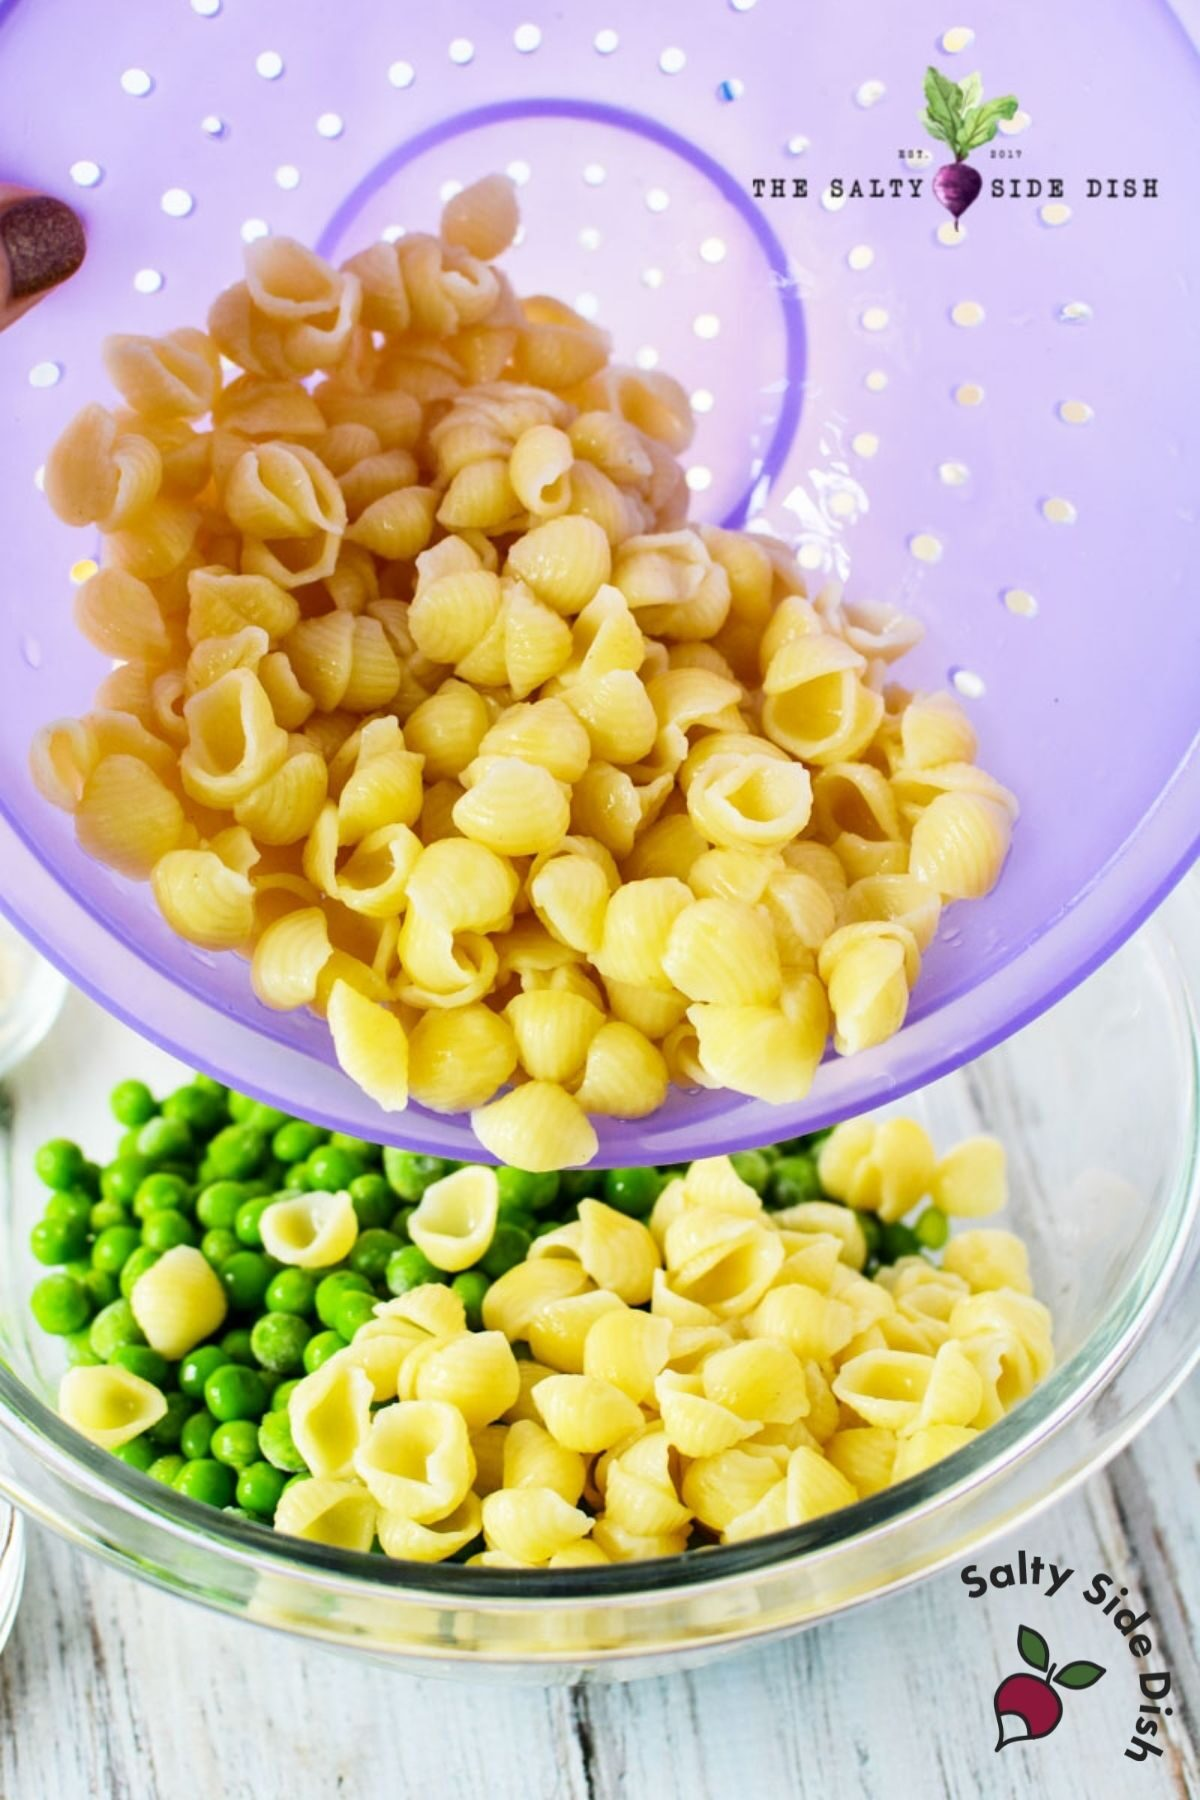 boiled pasta shells dumping into peas